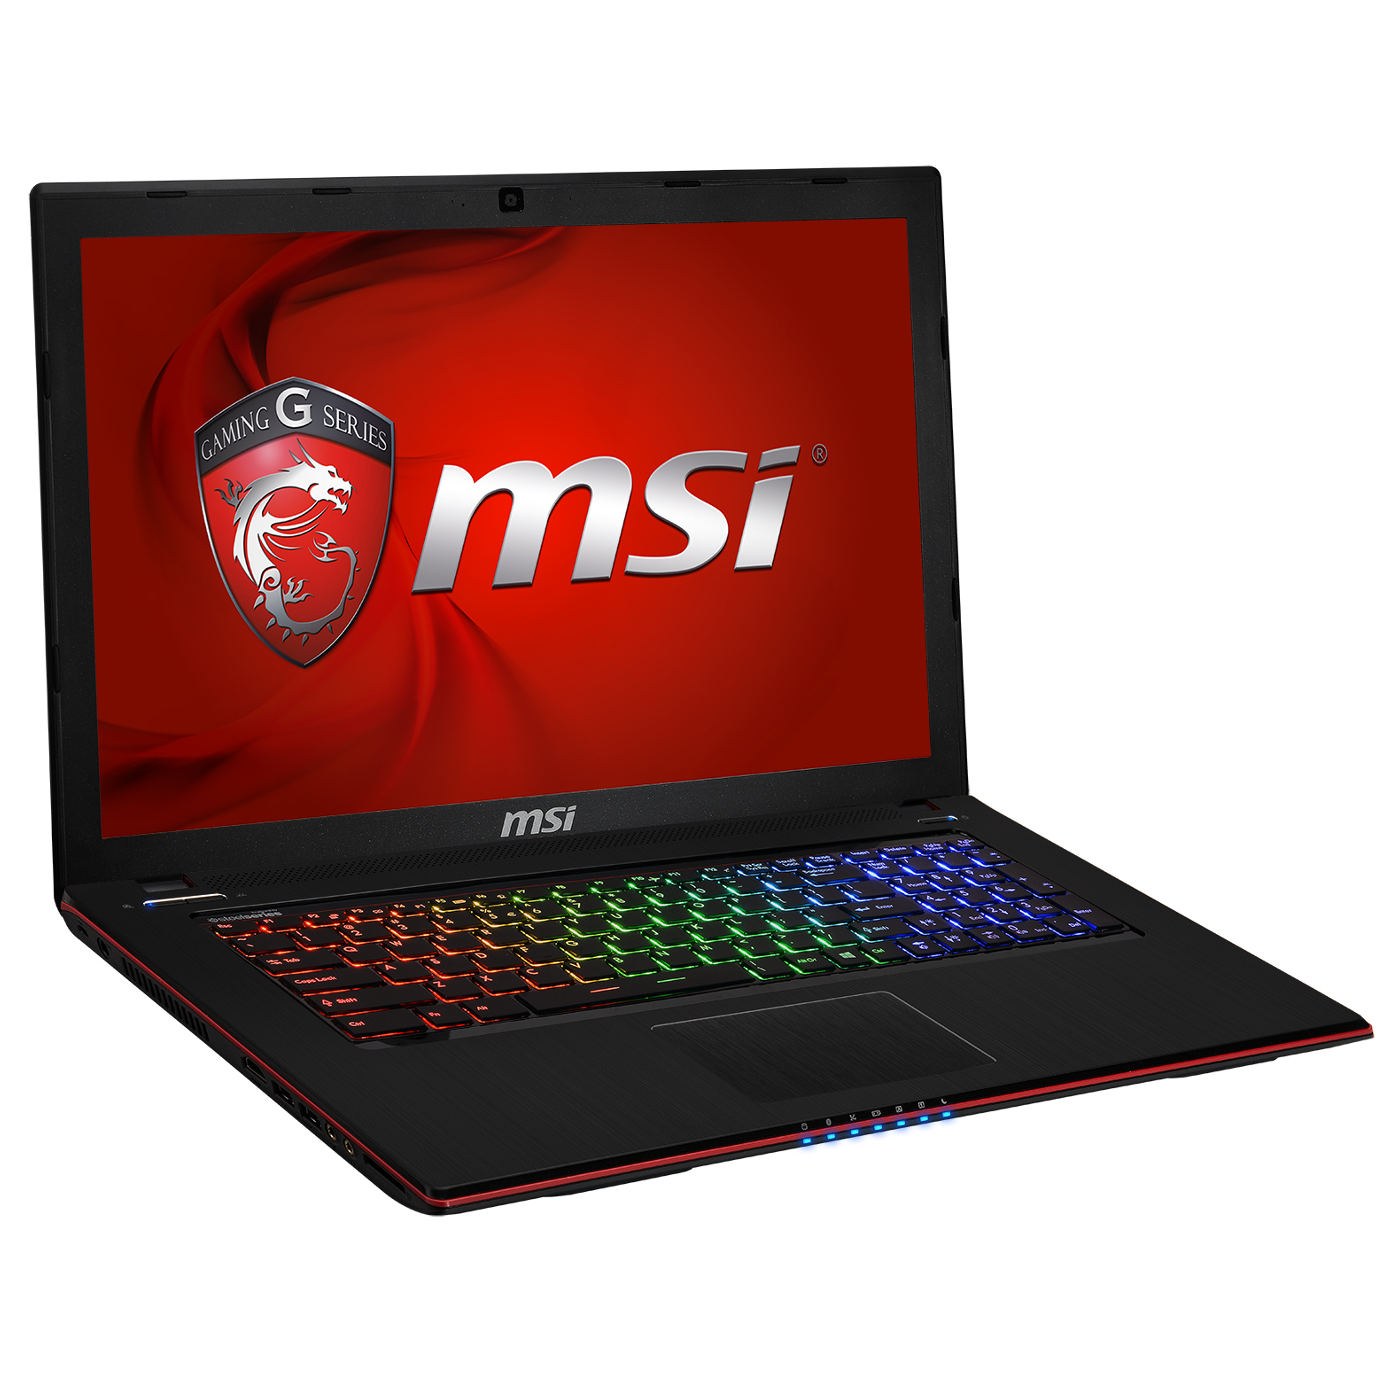 "PC portable MSI GE70 2PE-402FR Apache Pro Intel Core i7-4710HQ 8 Go SSD 128 Go + HDD 750 Go 17.3"" LED NVIDIA GeForce GTX 860M Graveur DVD Wi-Fi AC/Bluetooth Webcam Windows 8.1 64 bits (garantie constructeur 1 an)"